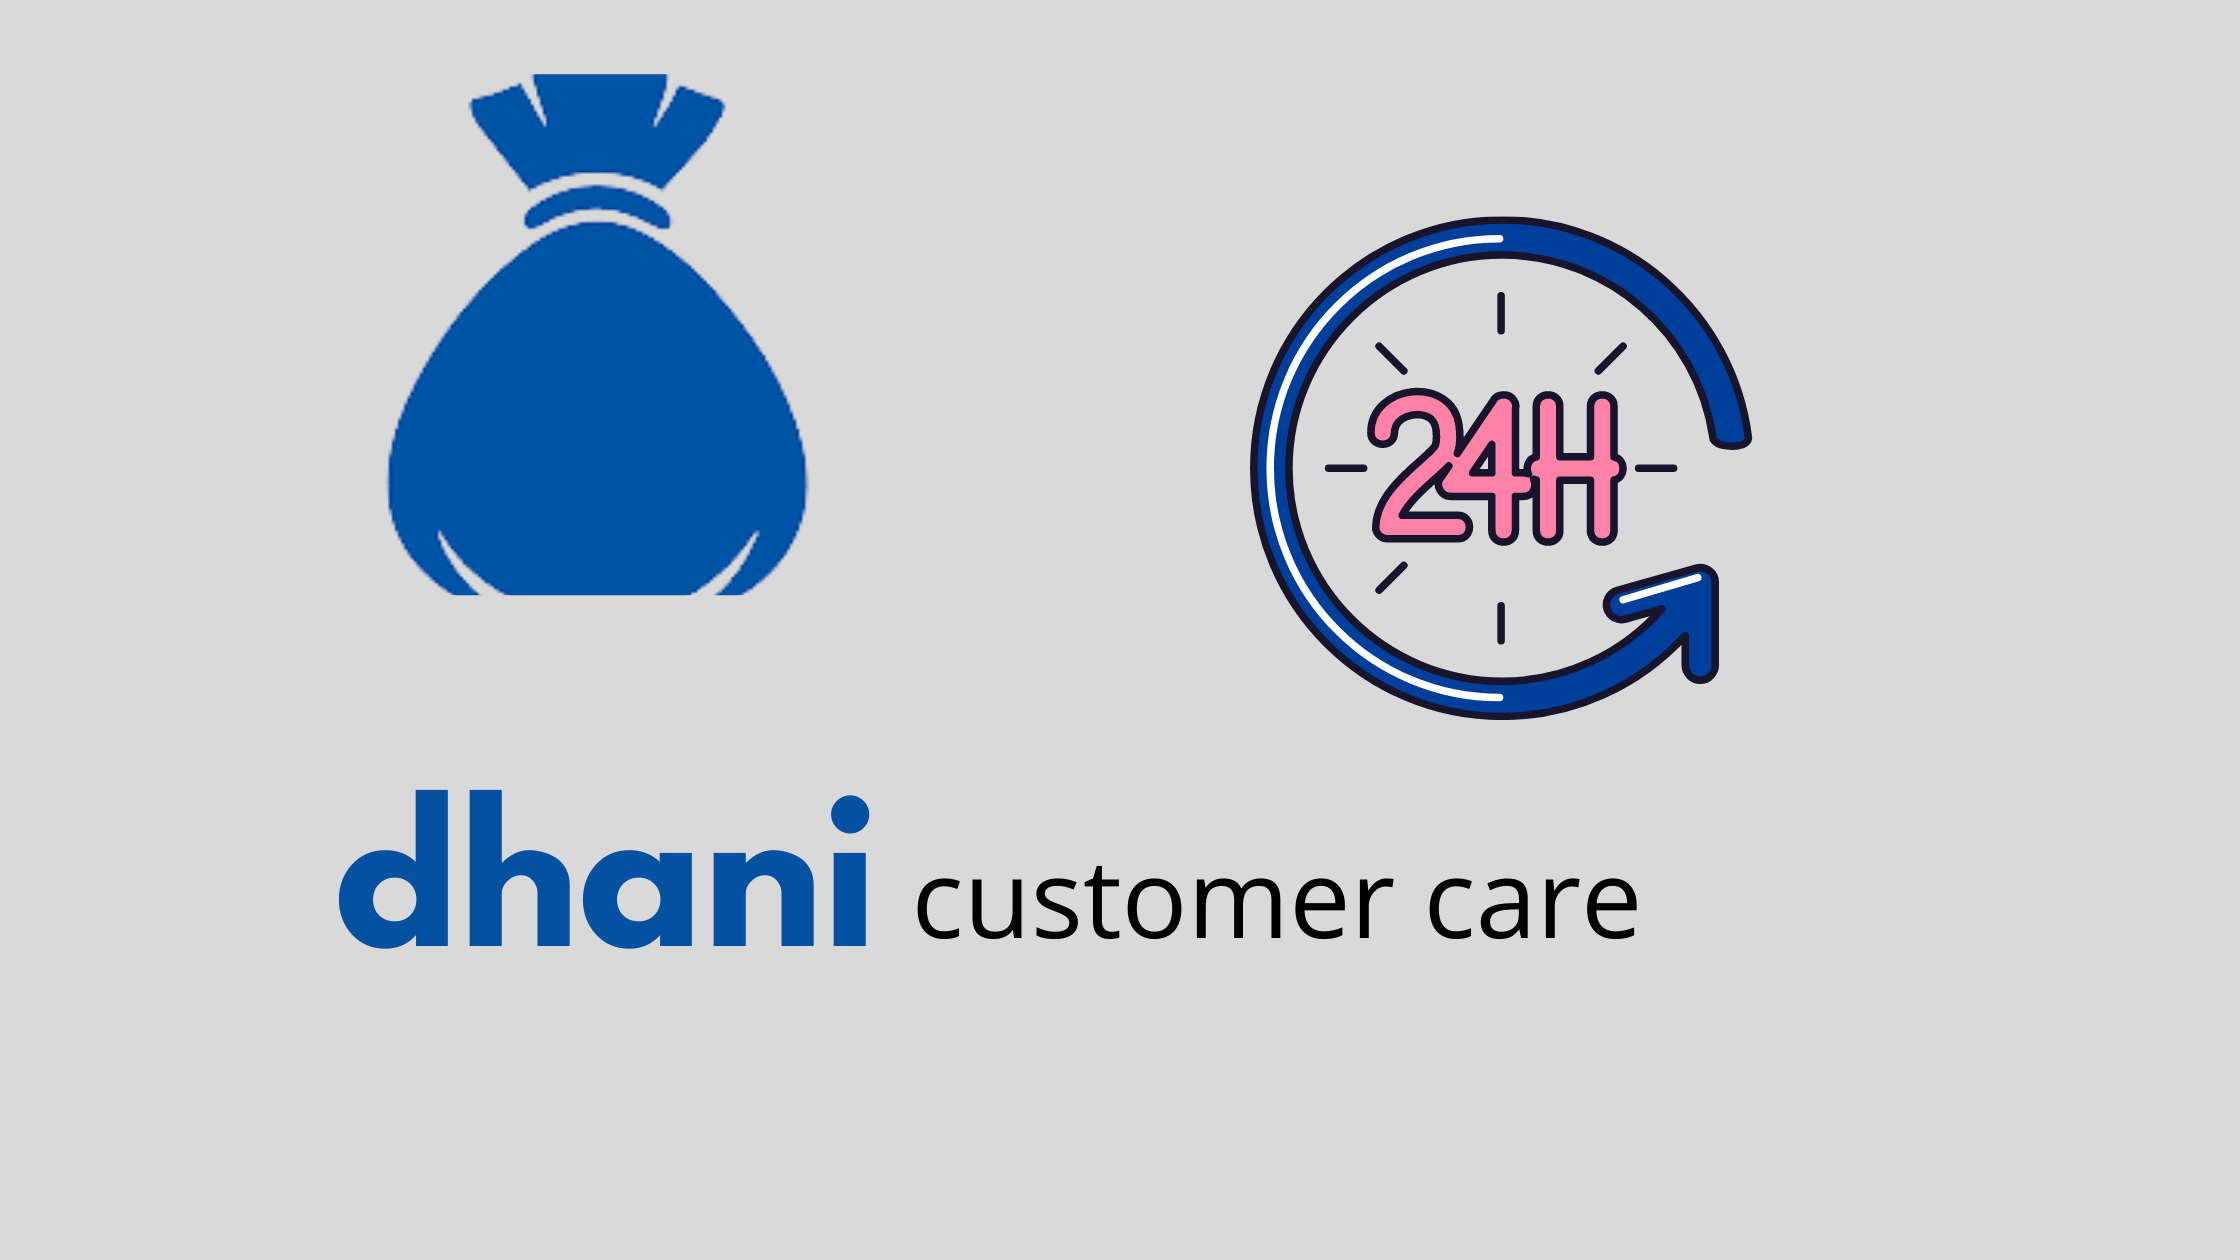 dhani lone customer care number and dhani customer care 24×7 Helpline Toll Free Number